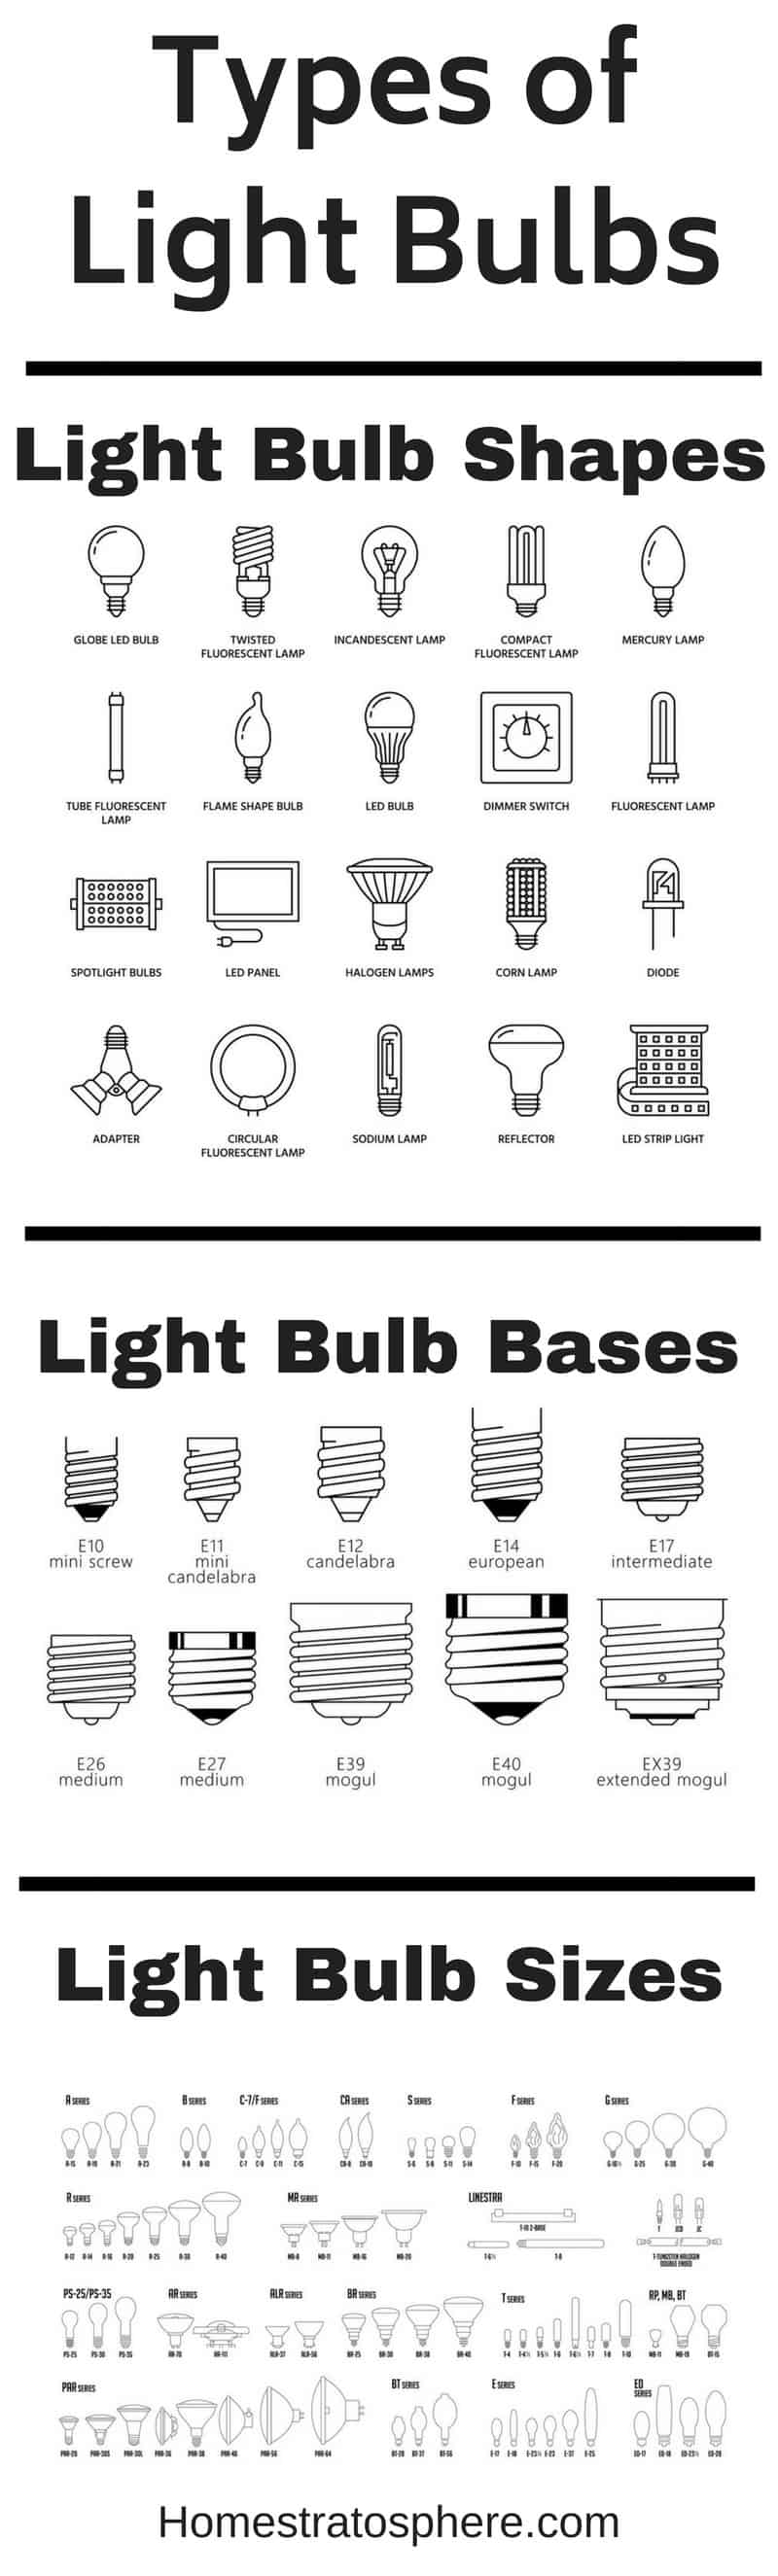 Chart setting out all the different types of light bulbs by shape, base and size.